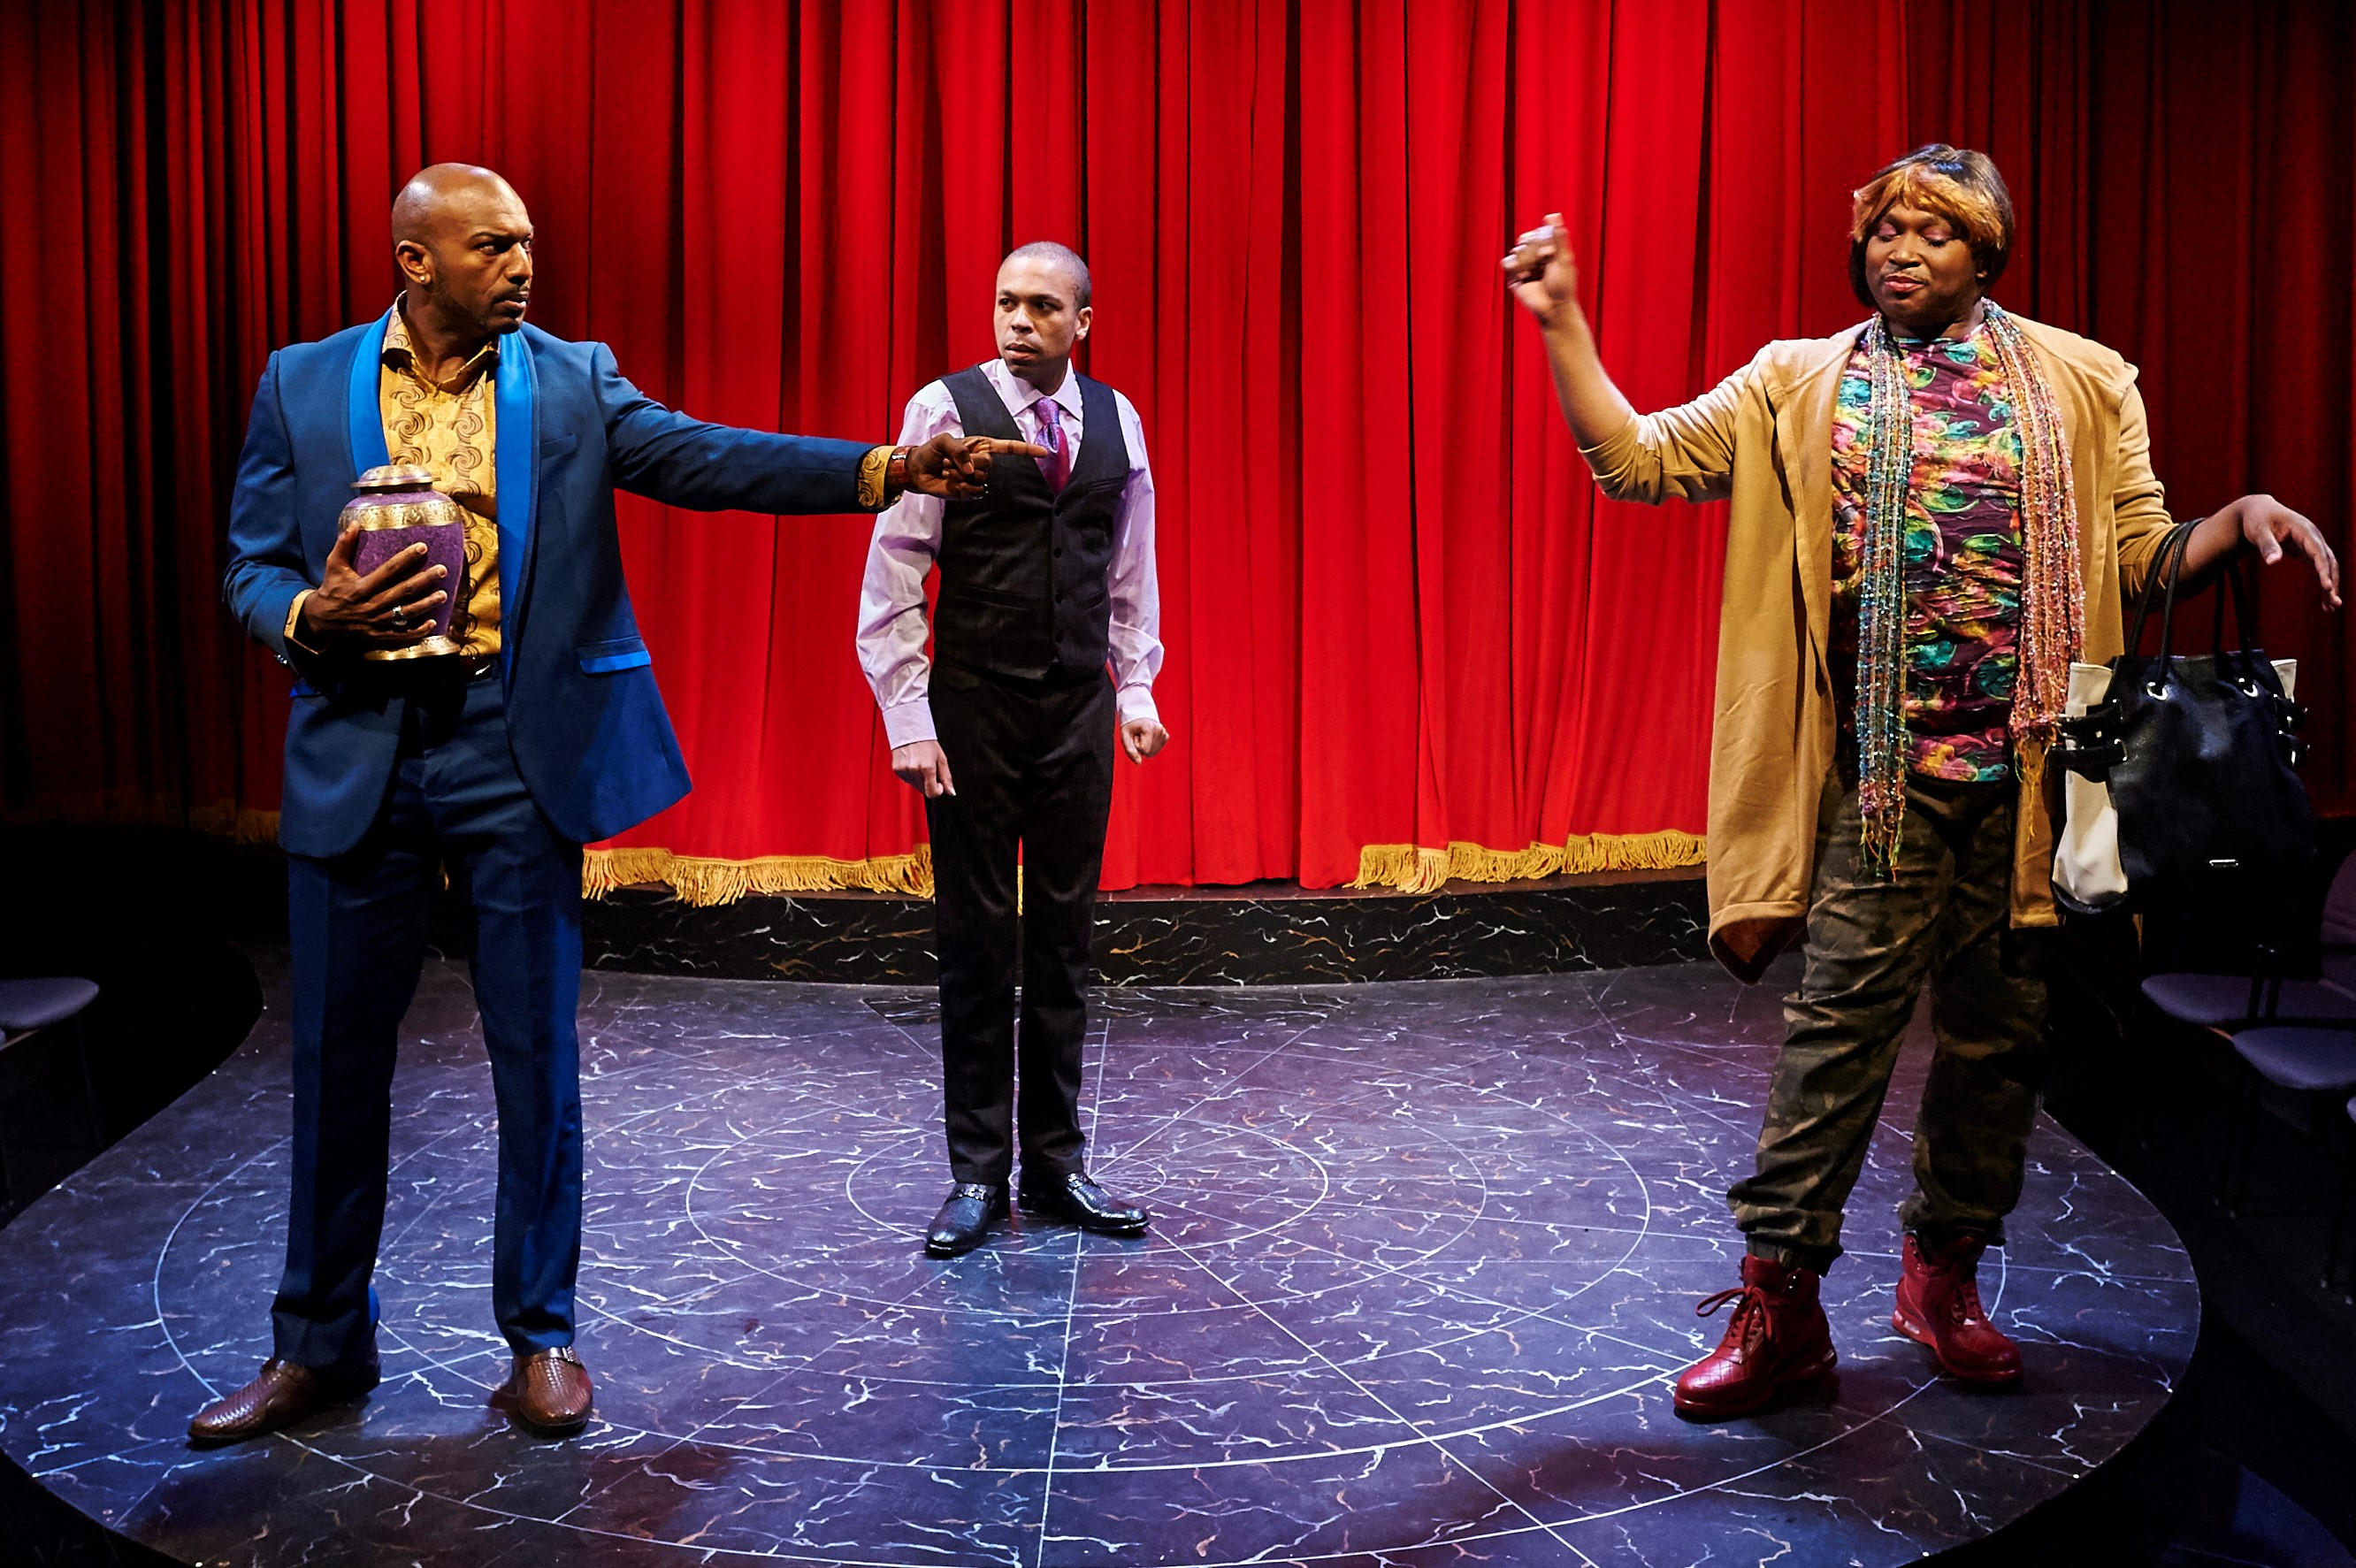 A scene from City Theatre's 'Wild with Happy' with Corey Jones as Gil, Jason Shavers as Terry, Monteze, and Freeland as Mo. photos: Kristi Jan Hoover